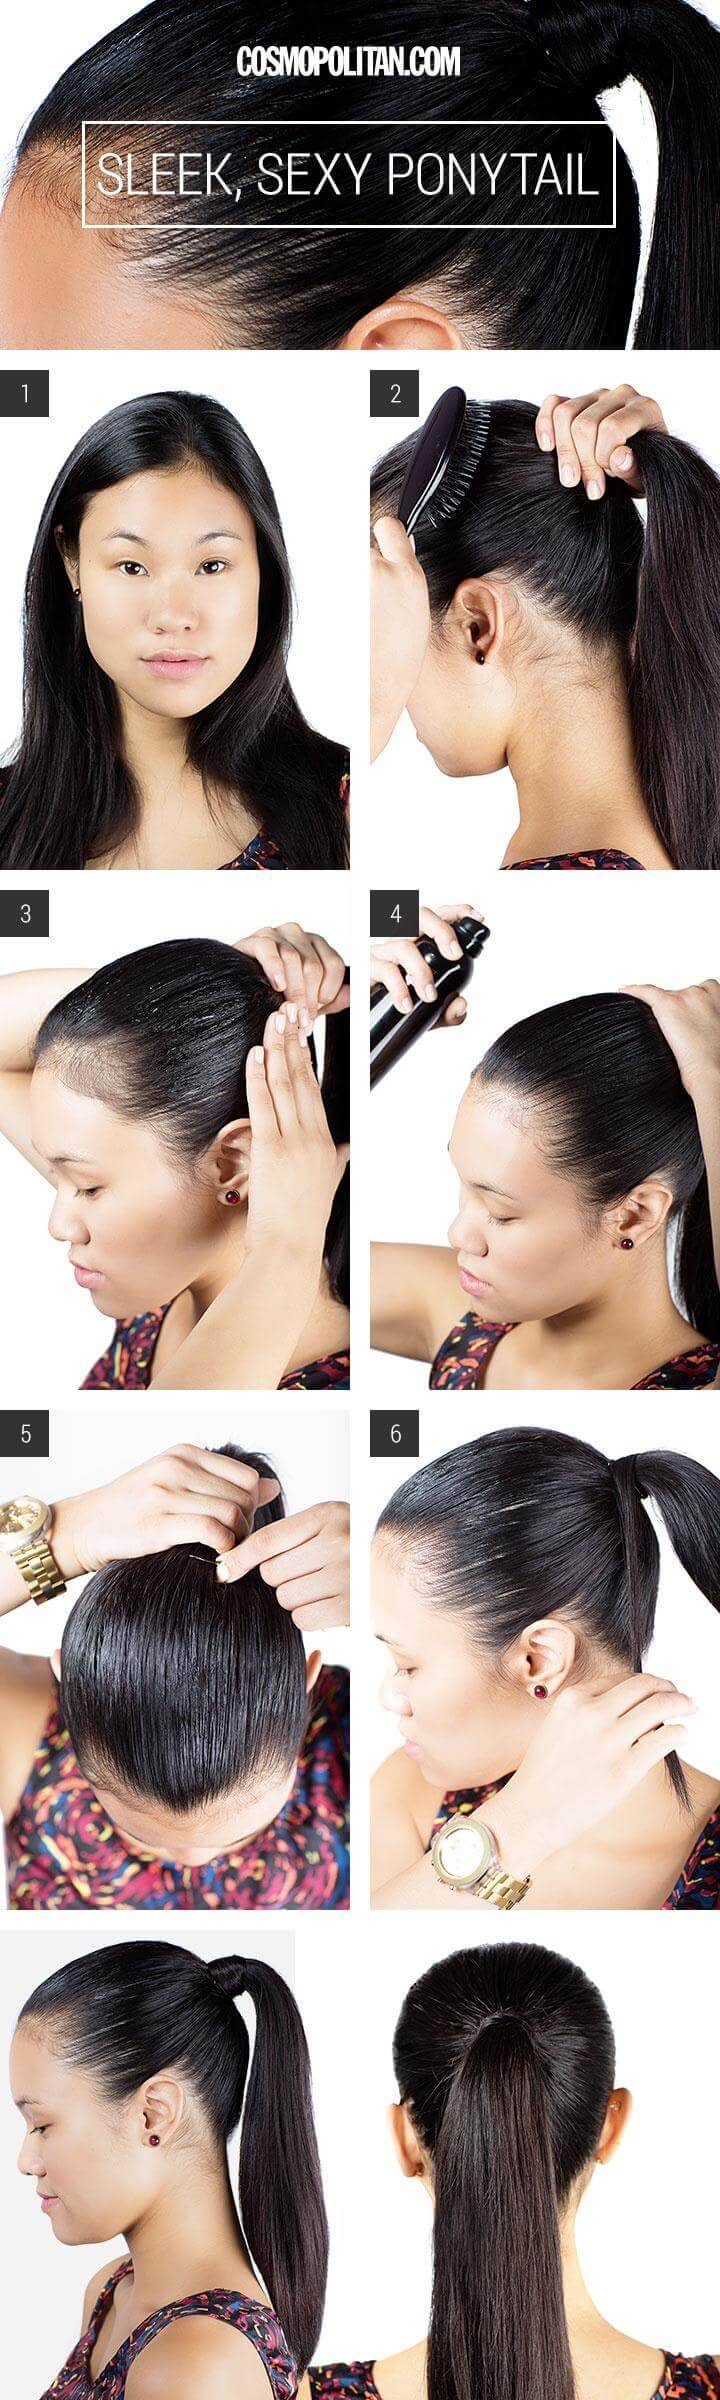 awesome slicked-back sleek ponytail hairstyle